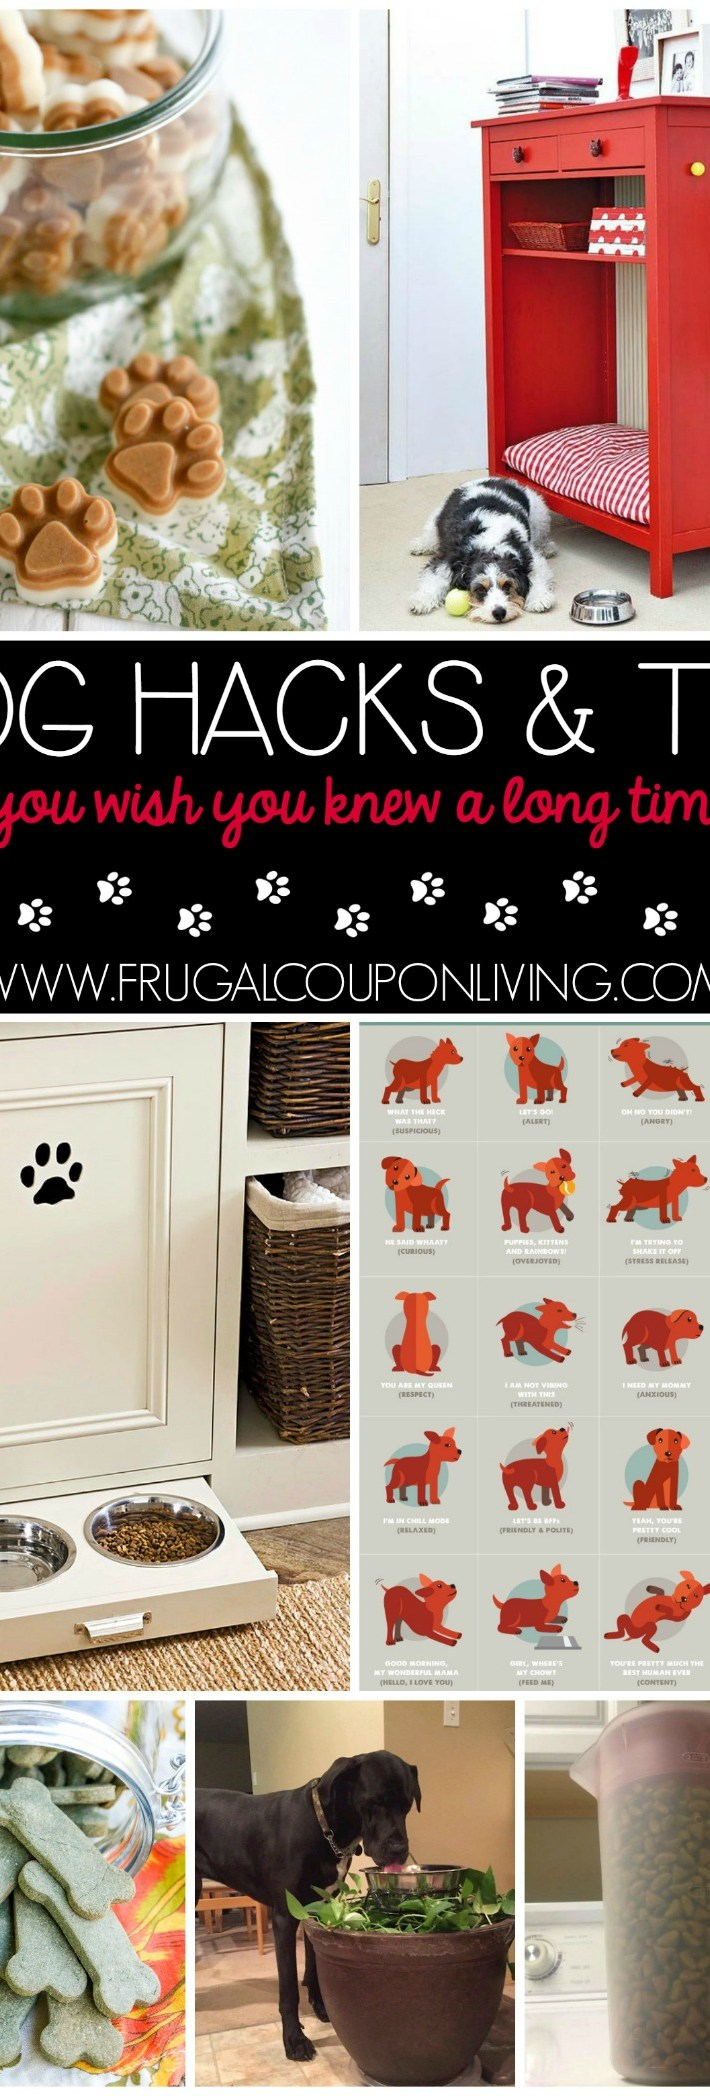 Dog-hacks-tips-frugal-coupon-living-better